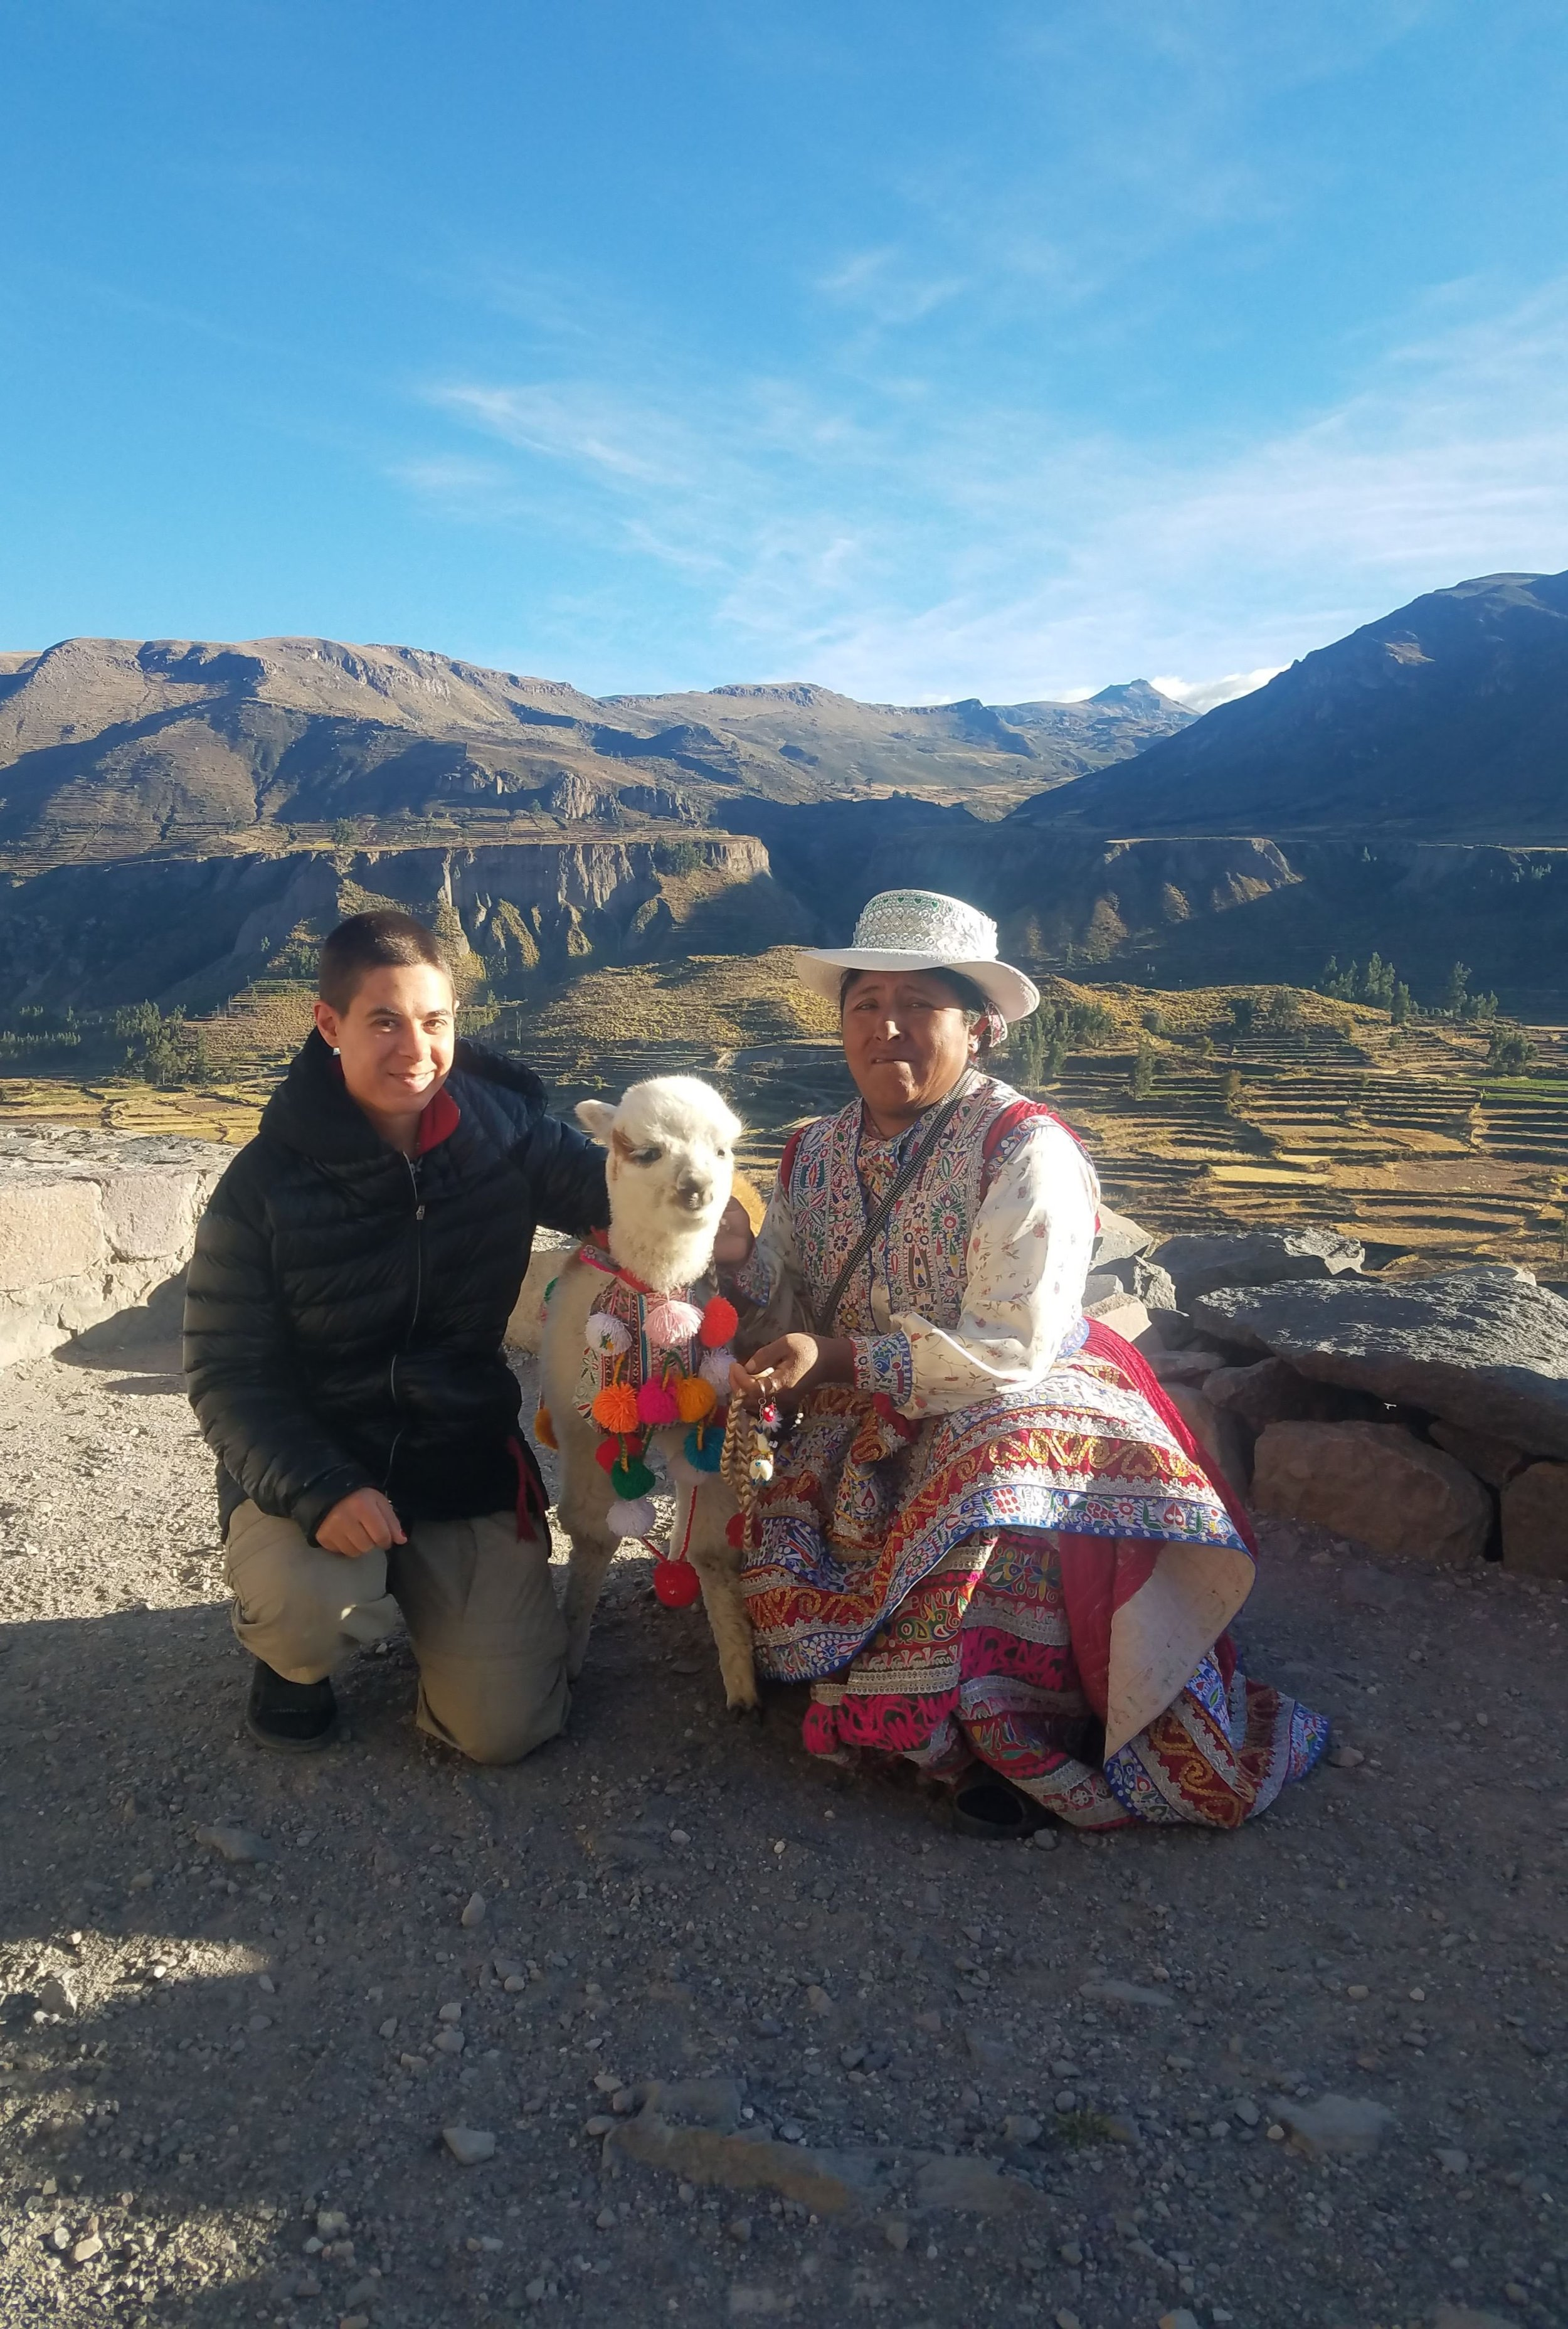 Meeting the locals near Colca Canyon.